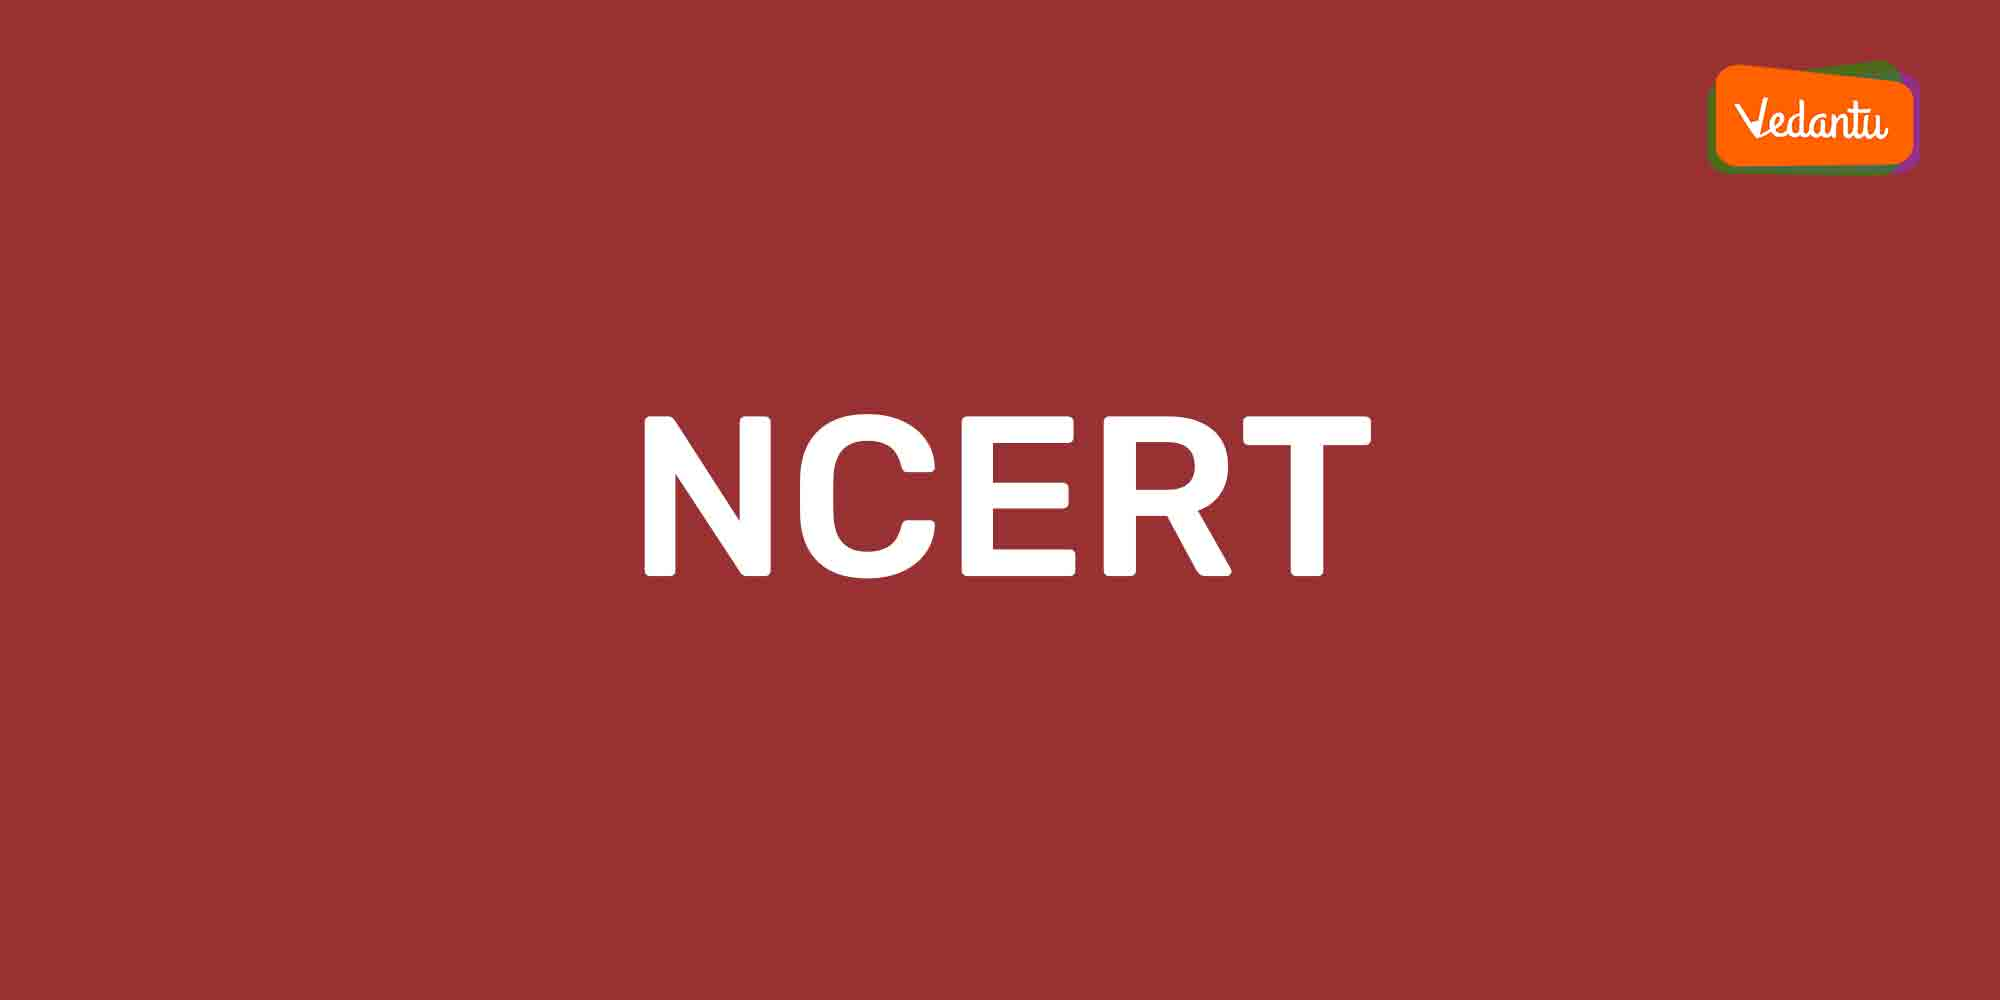 How to Get NCERT Solutions on Your Phones